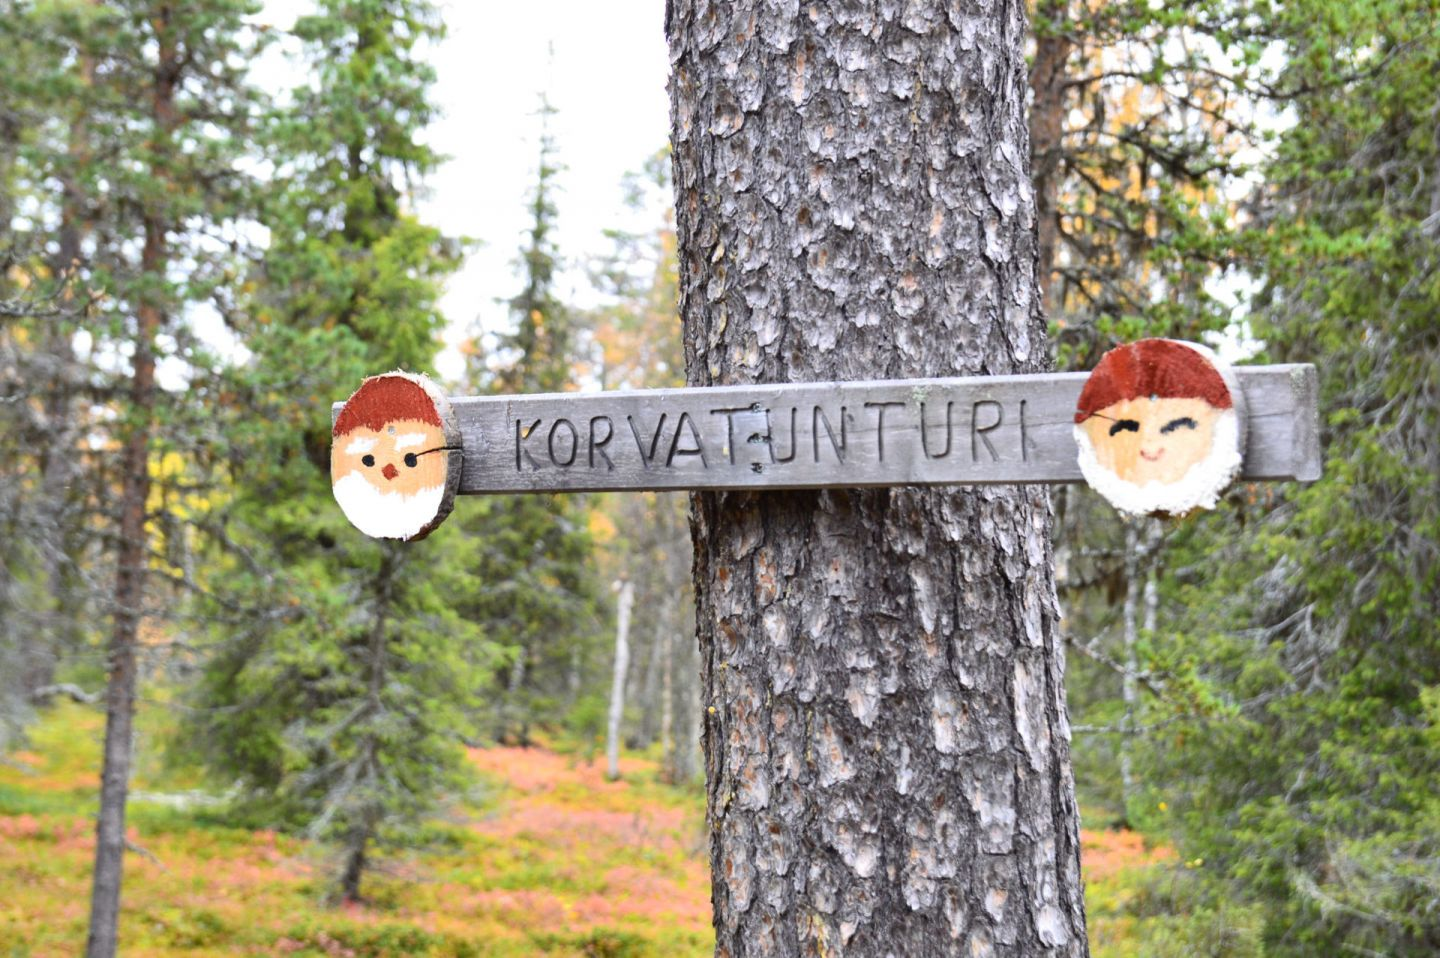 Hand-painted Santa Claus sign markers in Korvatunturi, Finland